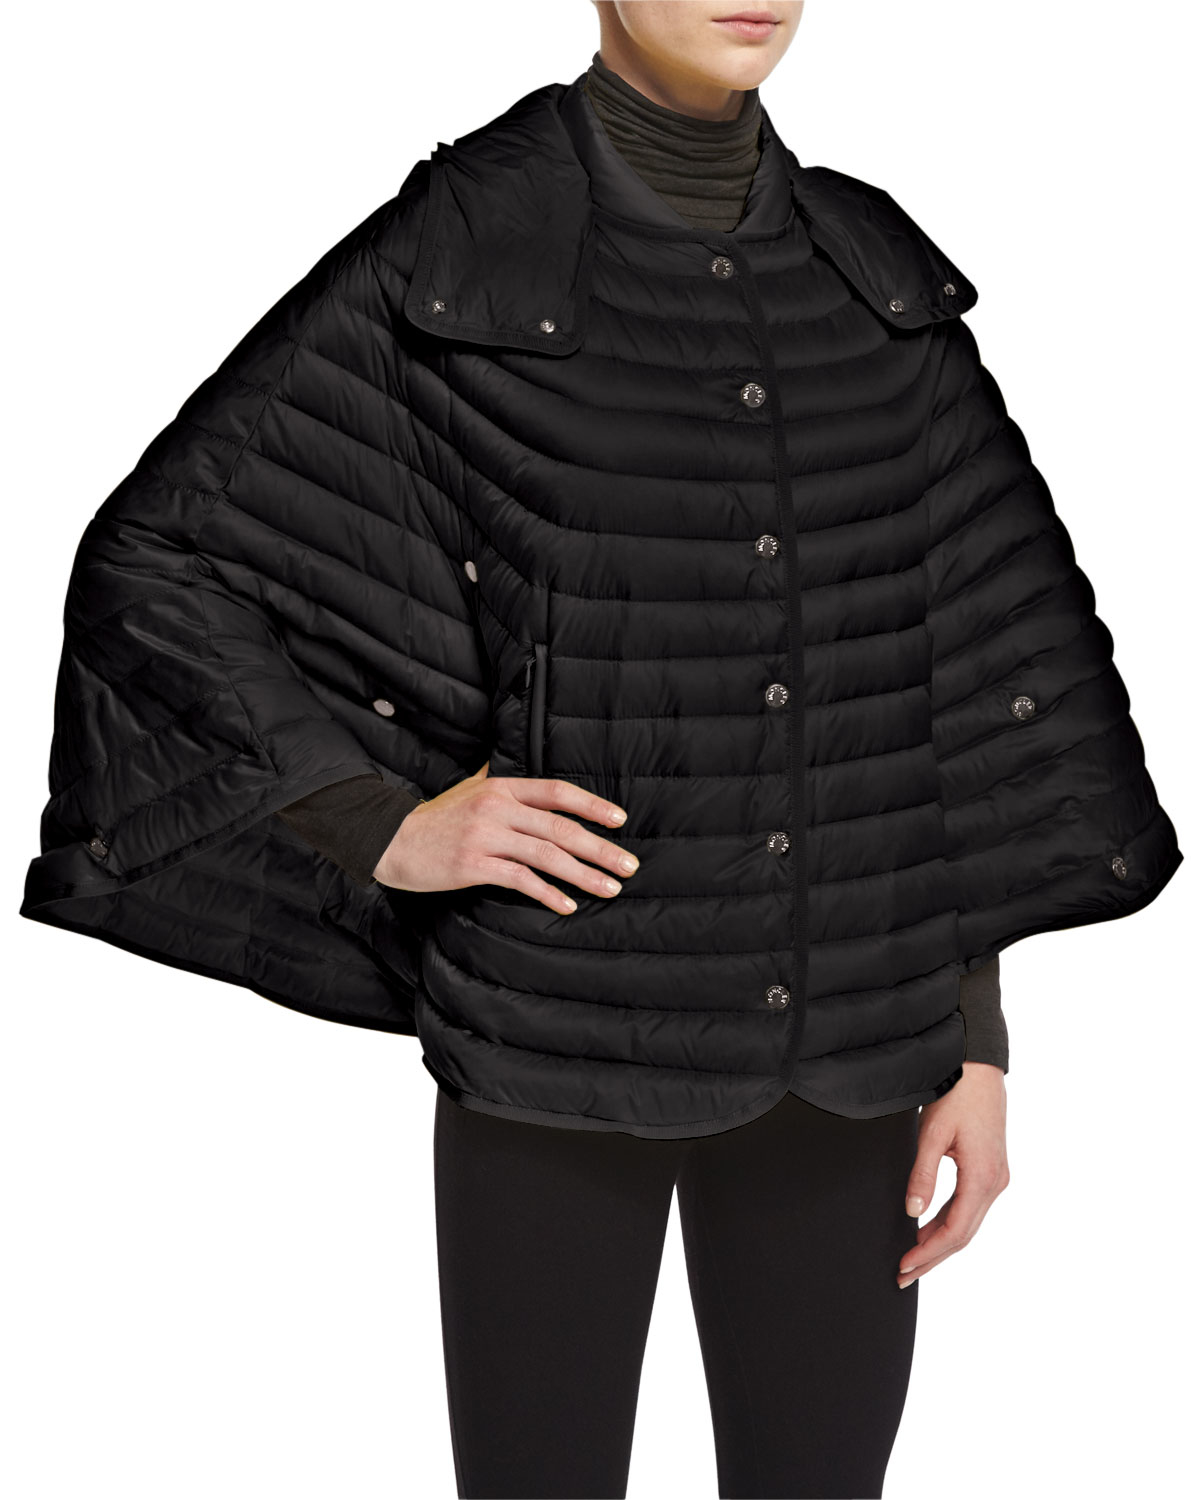 moncler sweater poncho